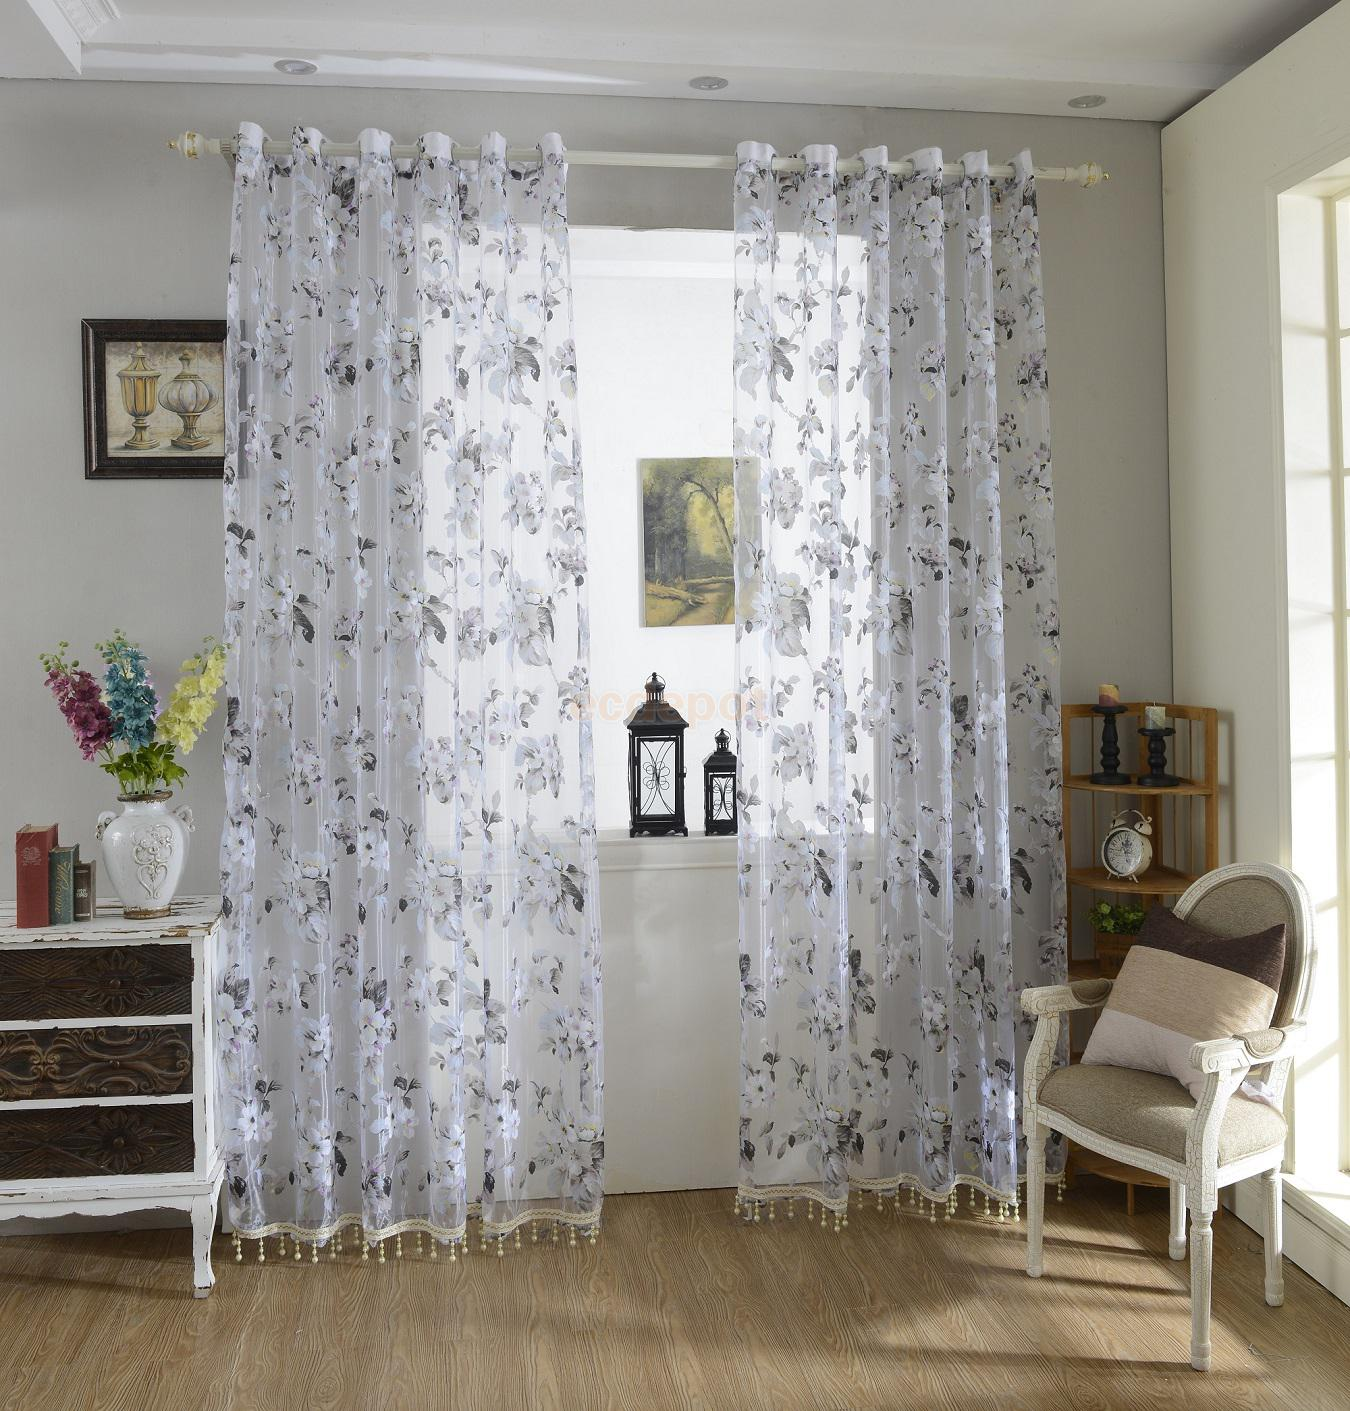 Sheer plum curtains - Flower Floral Tulle Sheer Curtains Window Blinds Panel W Bead Purple 100x200cm China